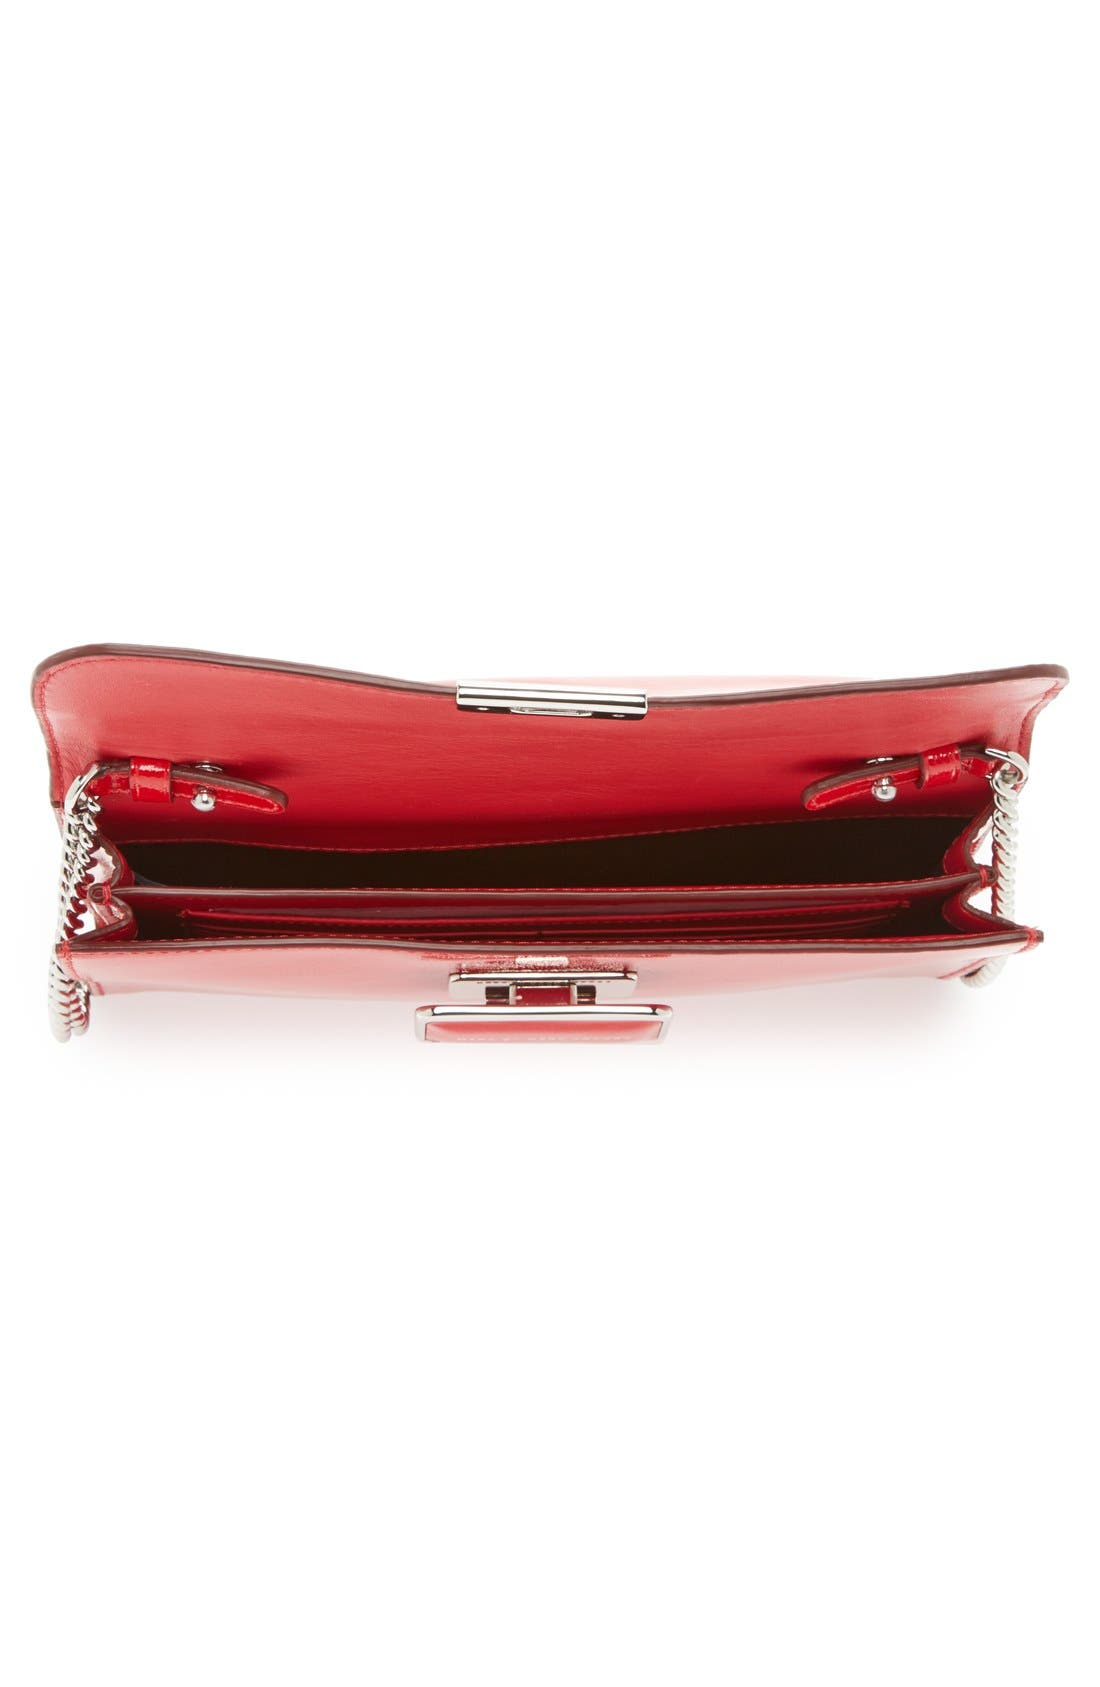 MARC BY MARC JACOBS 'Pegg' Patent Leather Clutch,                             Alternate thumbnail 2, color,                             600